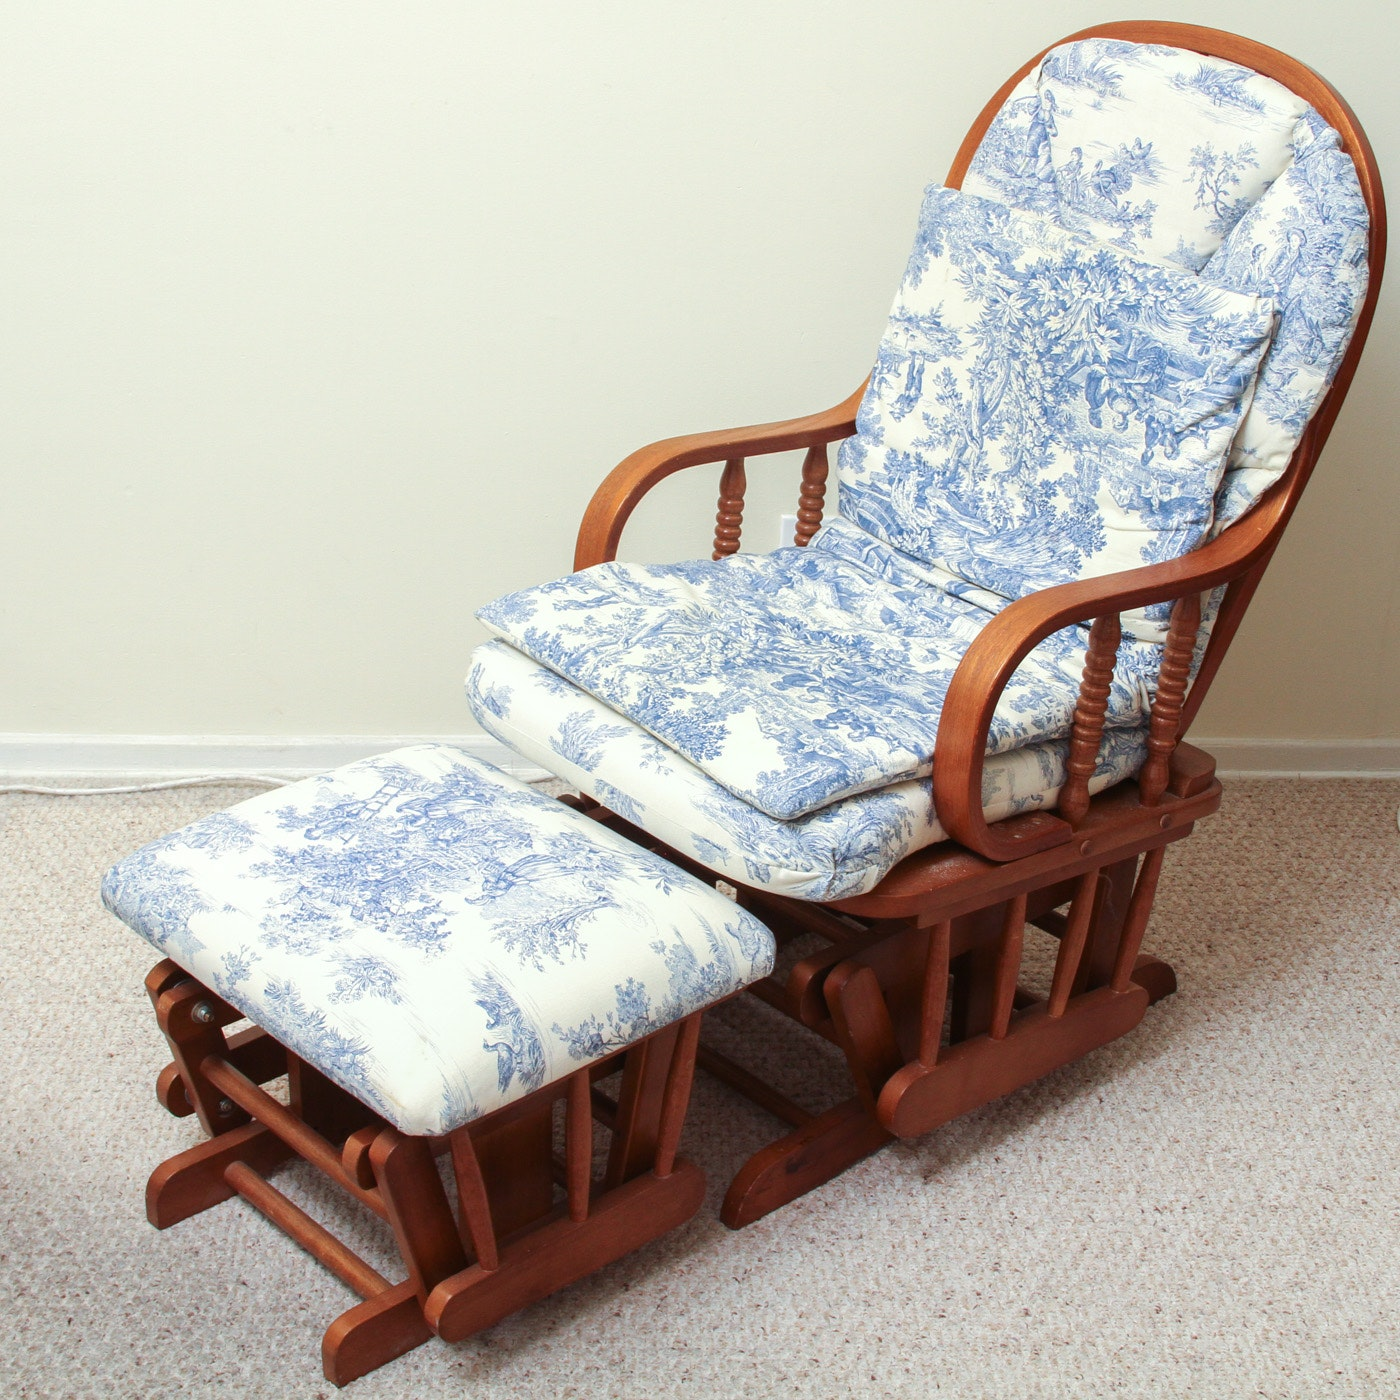 Wooden Glider Rocking Chair With Glider Ottoman and Toile Cushions